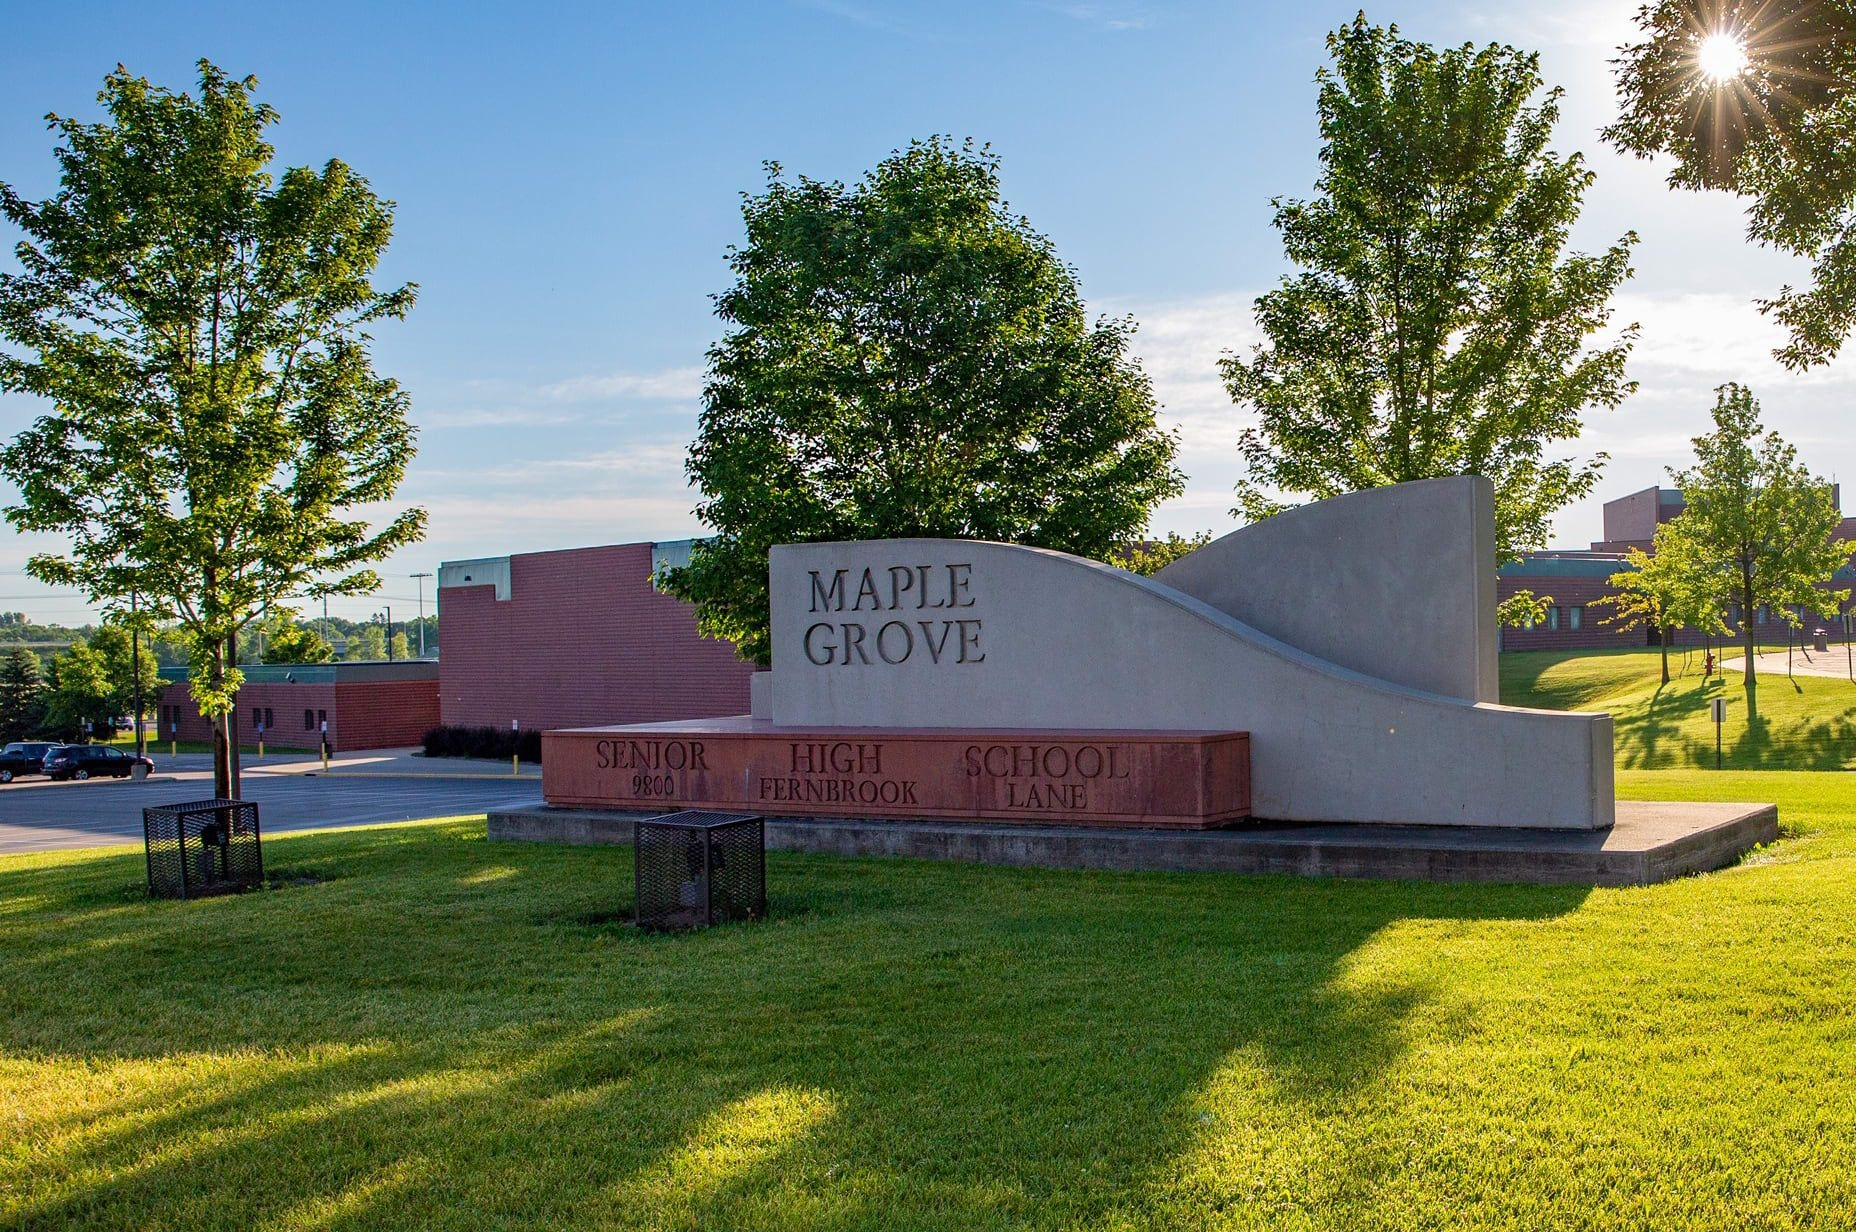 Maple Grove Senior High School - Maple Grove Senior High School